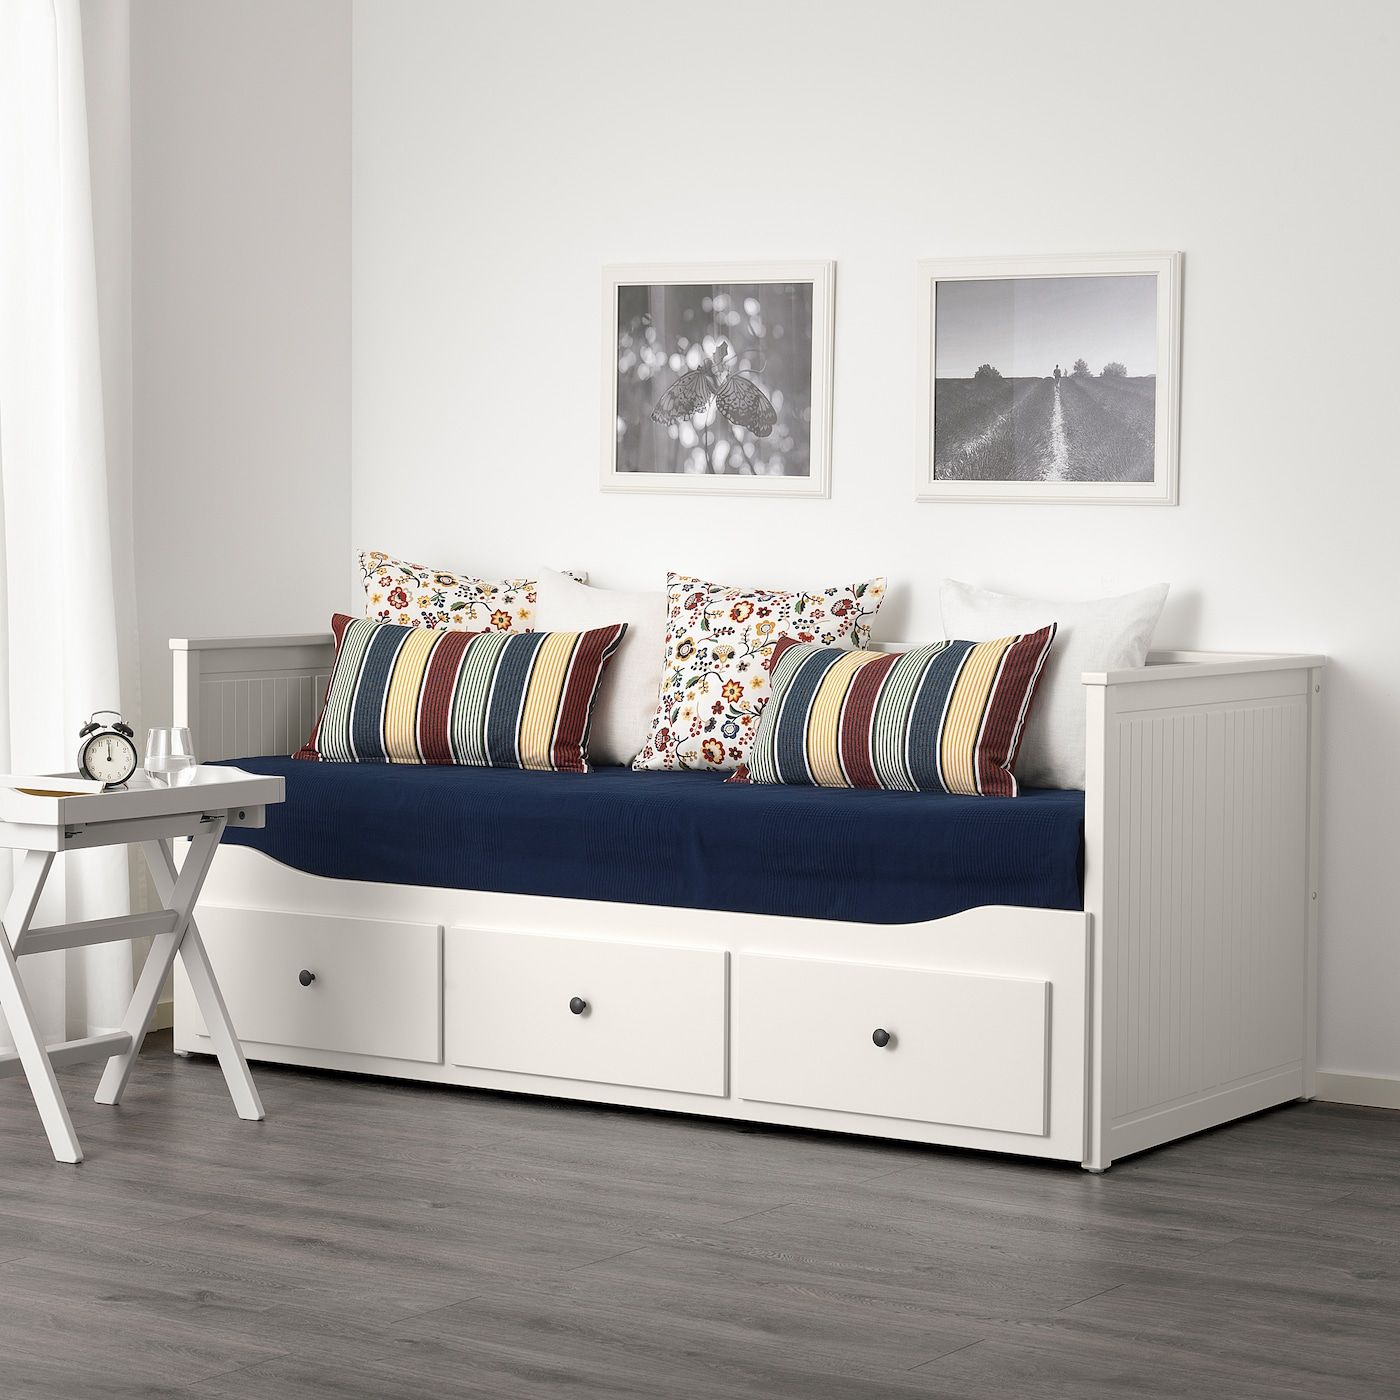 Hemnes Daybed Frame With 3 Drawers White Twin Ikea En 2020 Lit Hemnes Ikea Hemnes Canape Lit Gigogne